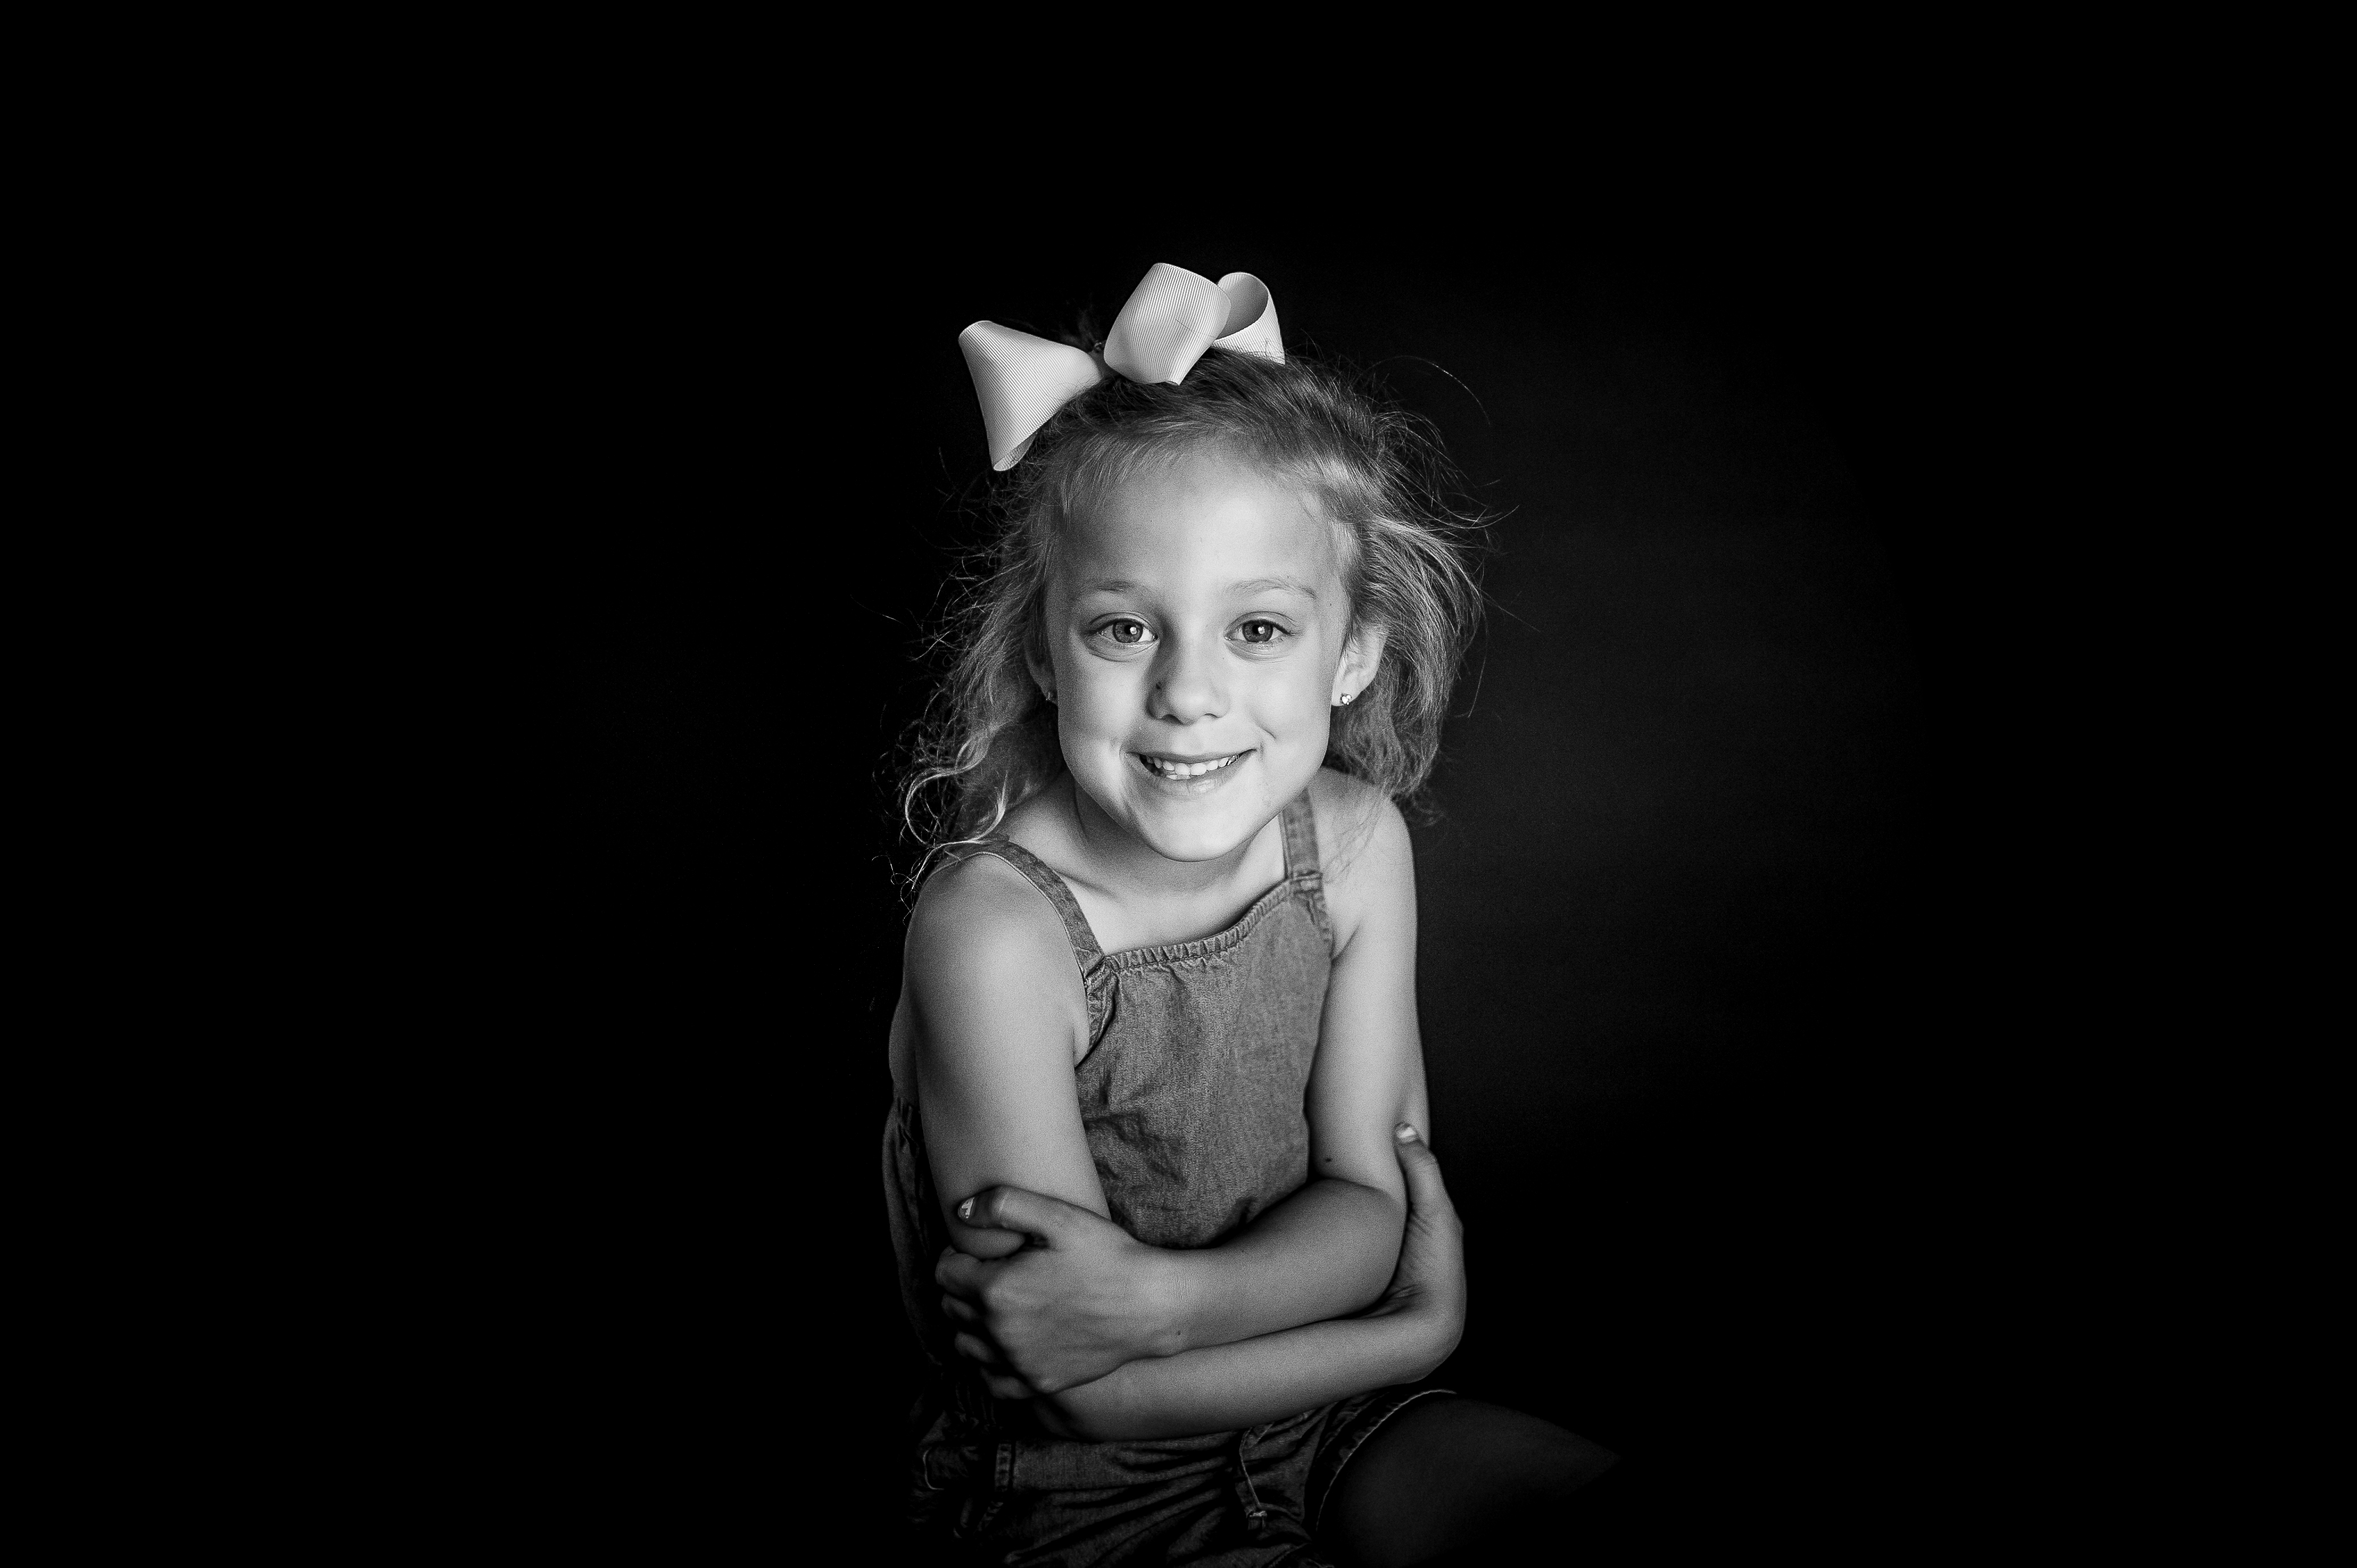 girl with blonde hair and bow